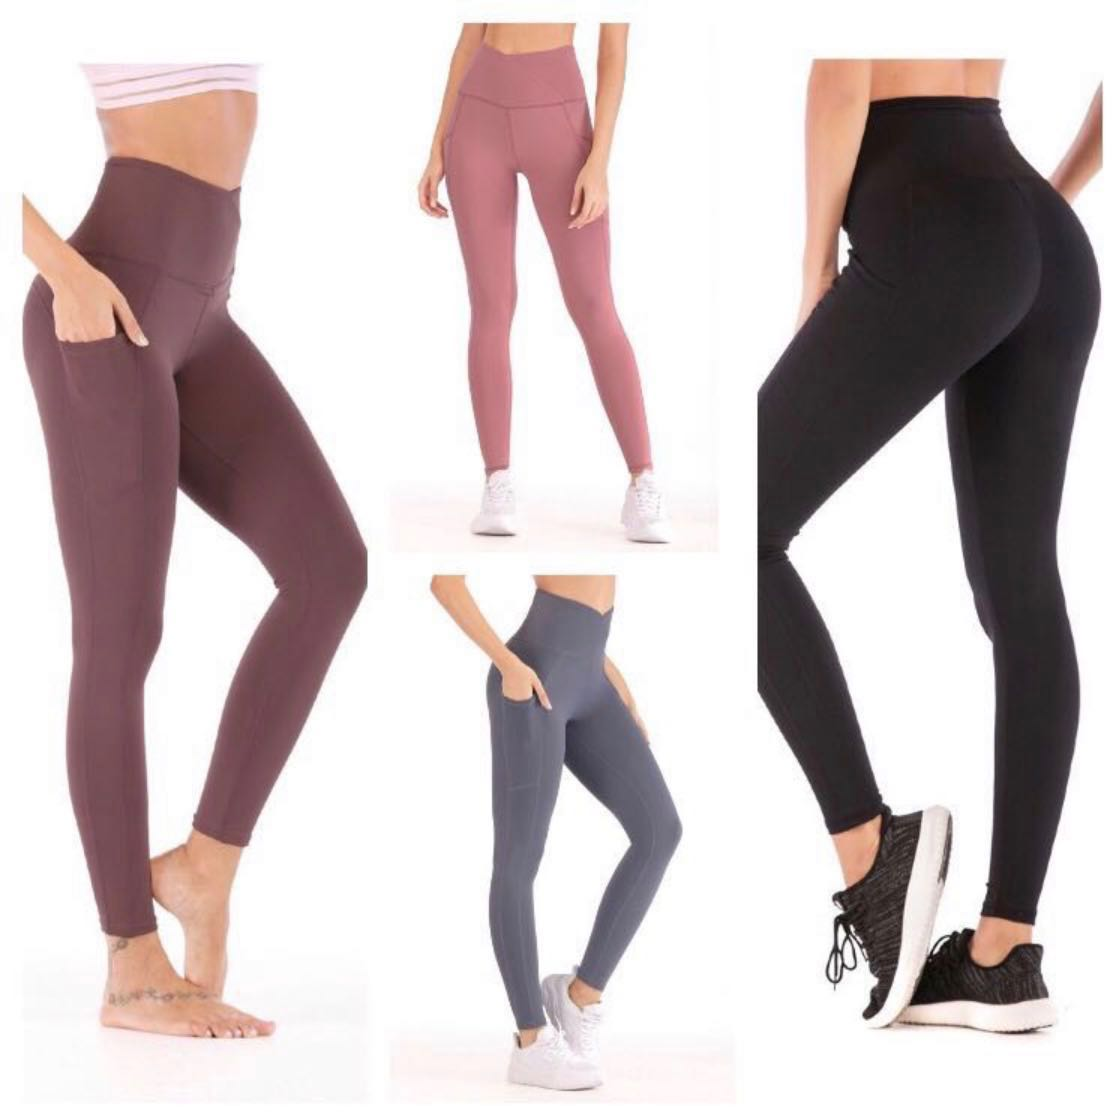 0dd579ff93623 MW: High Crossover Sports Leggings, Sports, Sports Apparel on Carousell